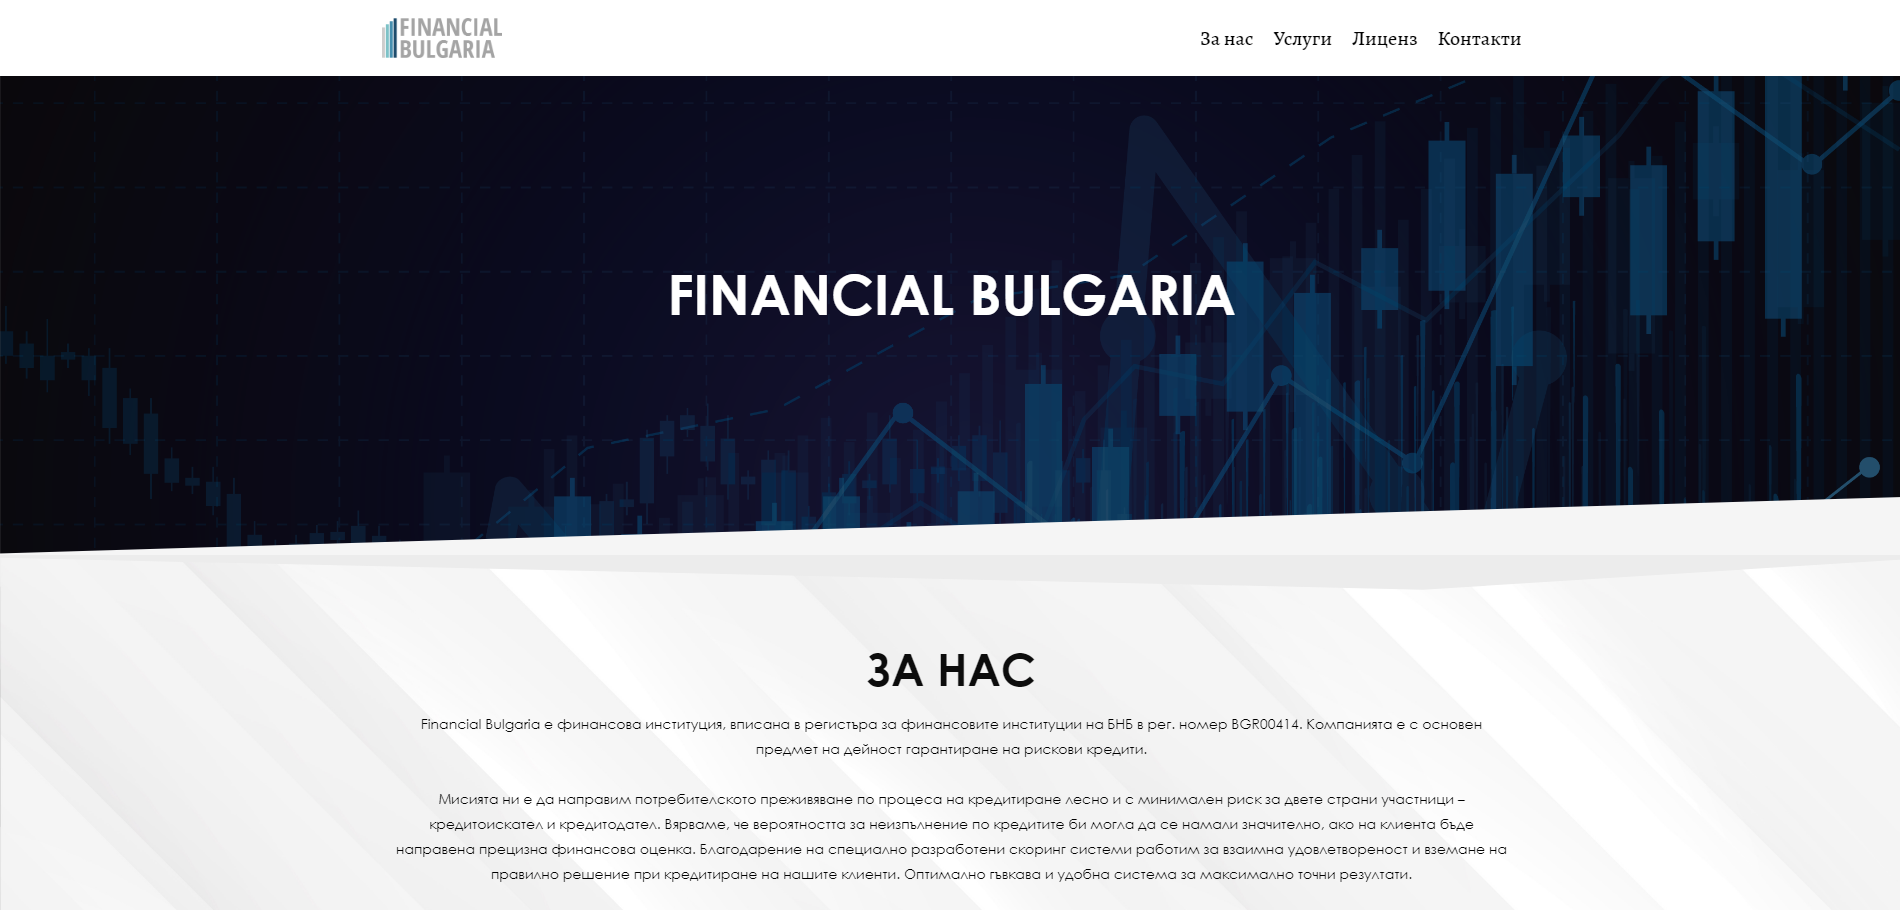 FINANCIAL BULGARIA